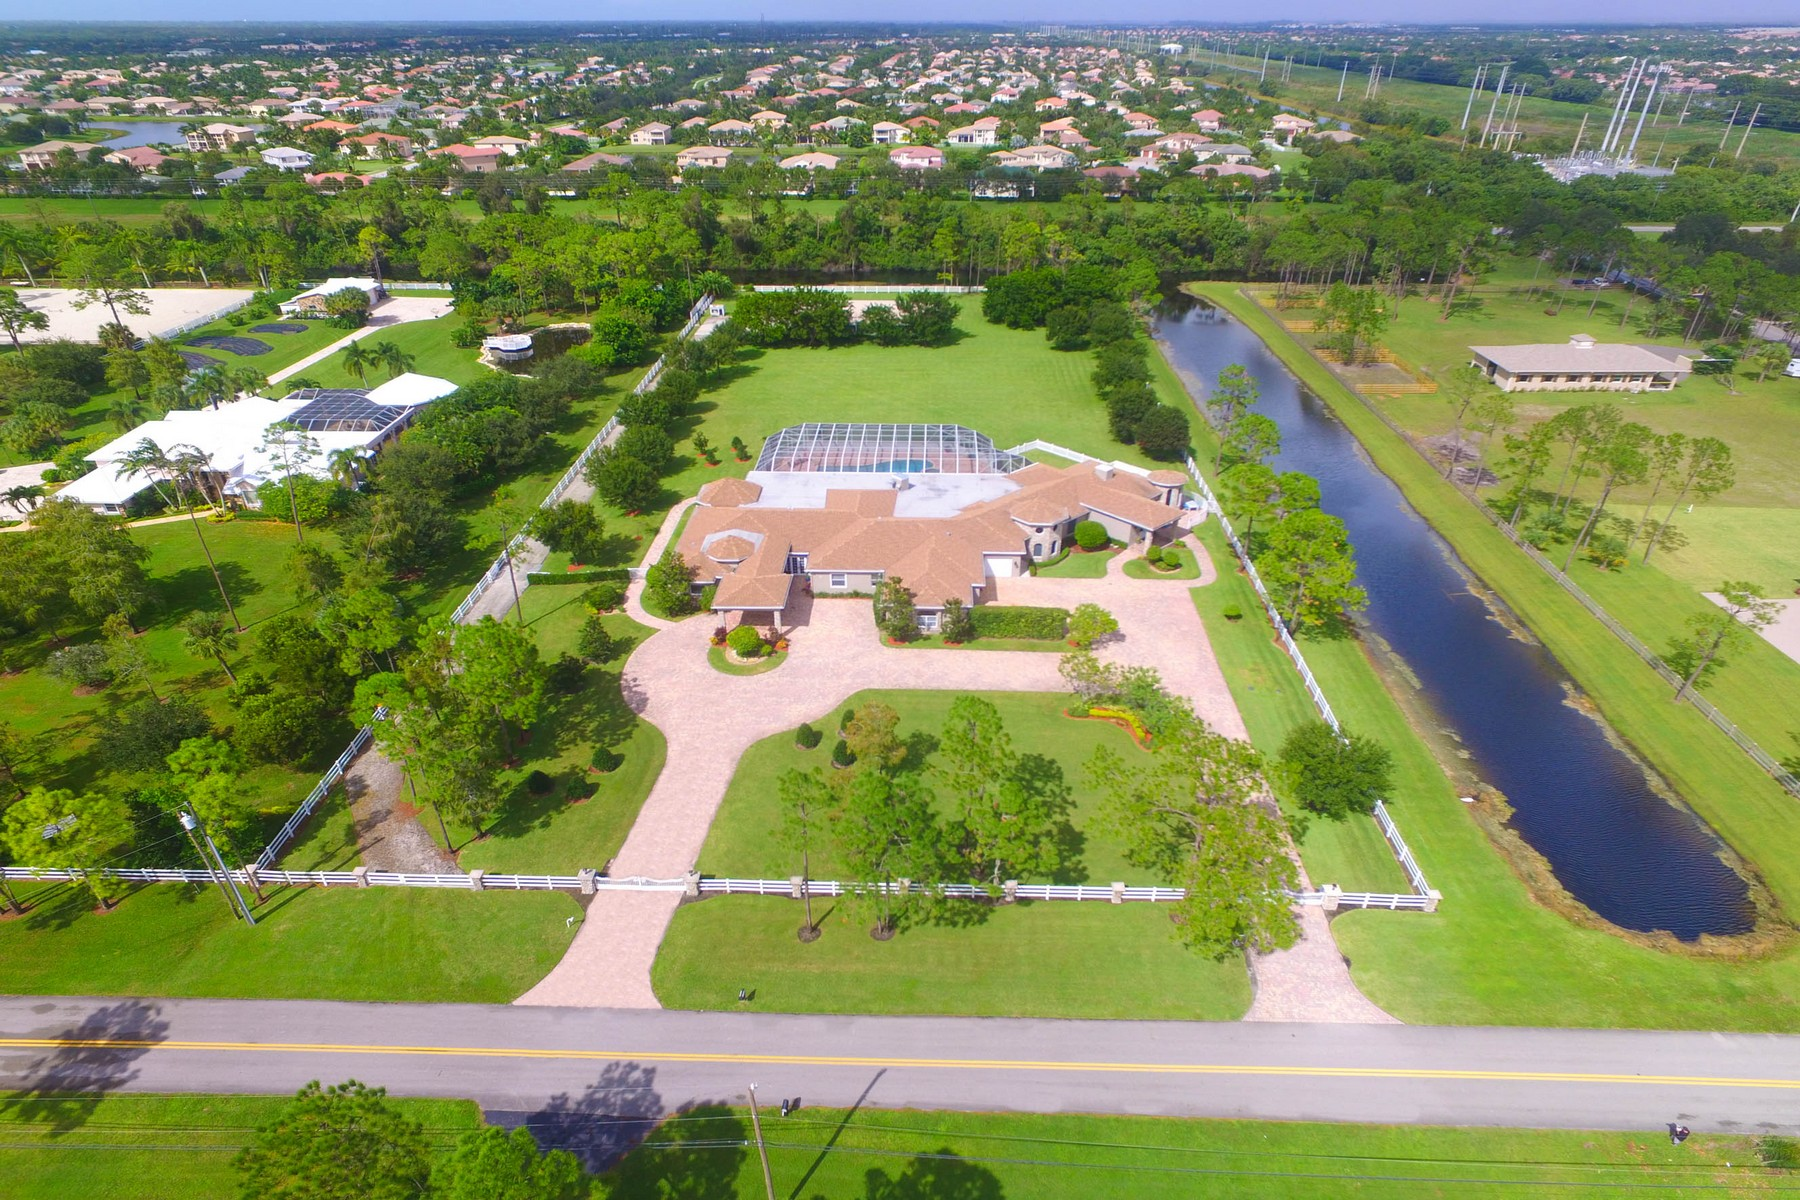 Single Family Home for Sale at 11225 Hawk Hollow 11225 Hawk Hollow Road Lake Worth, Florida 33449 United States